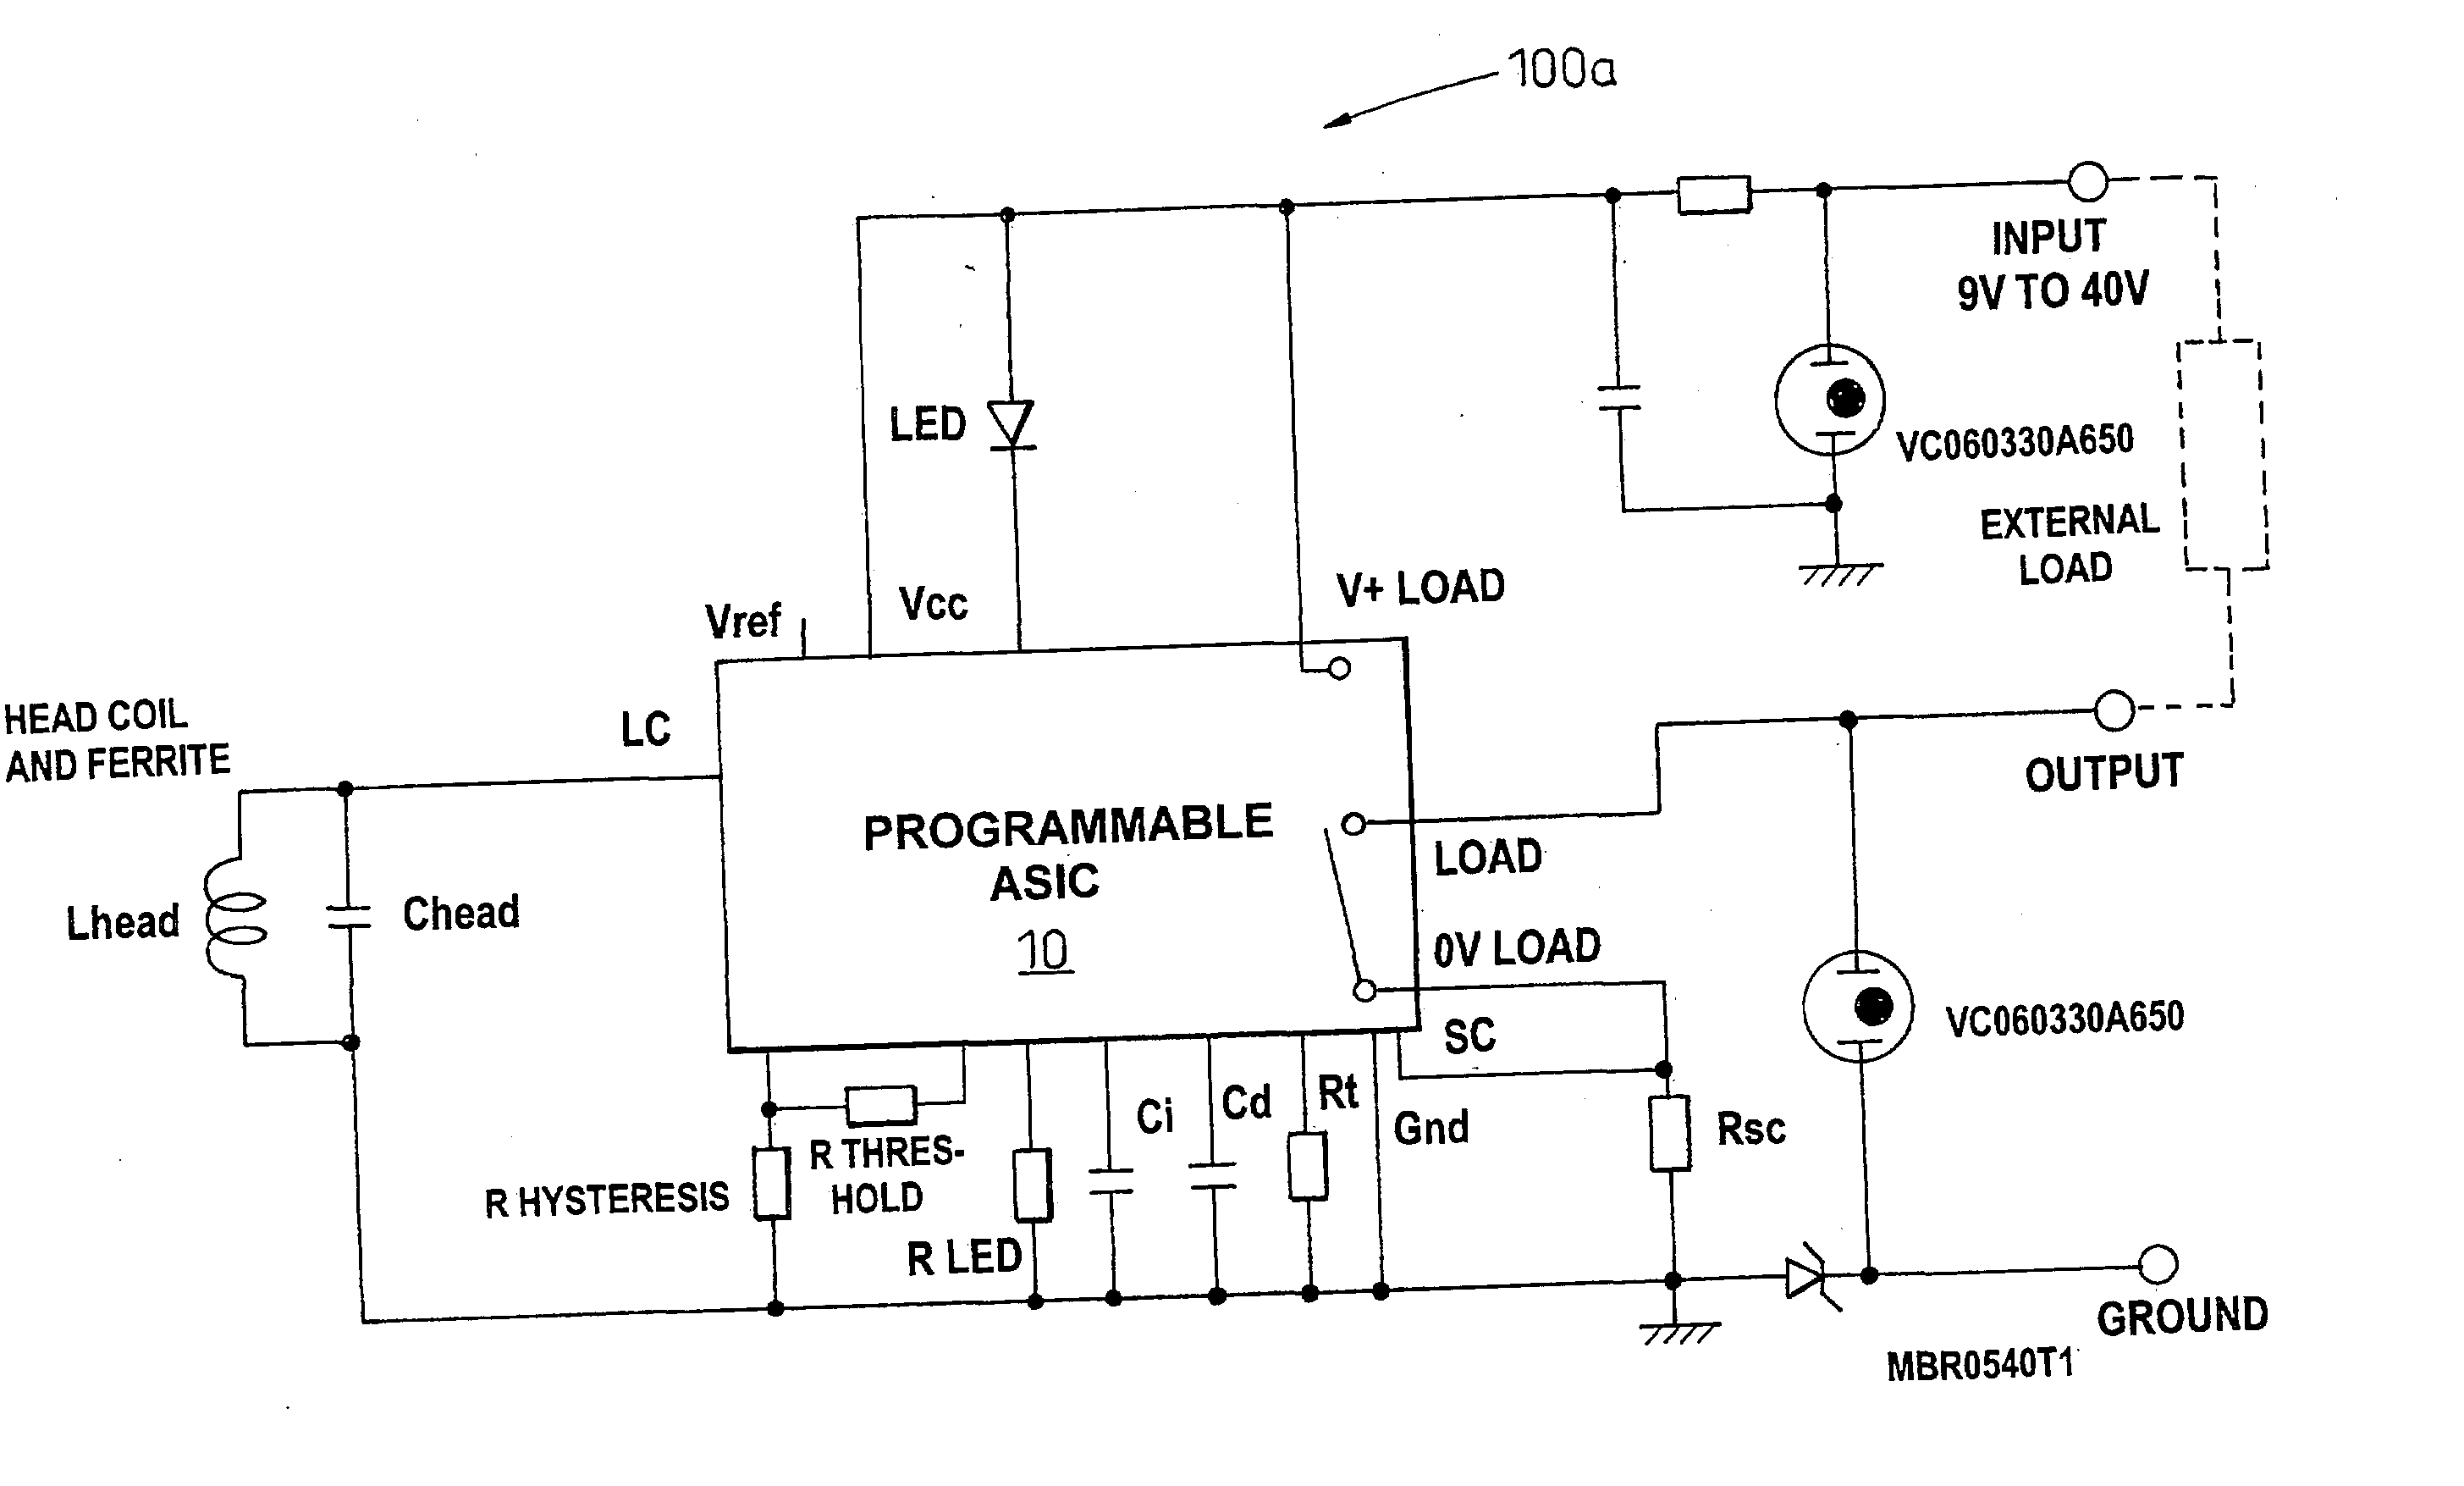 Wiring Diagram Proximity Sensors 32 Images Infrared Sensor Us20030164697a1 20030904 D00000 Patent Us20030164697 Inductive And Related For At